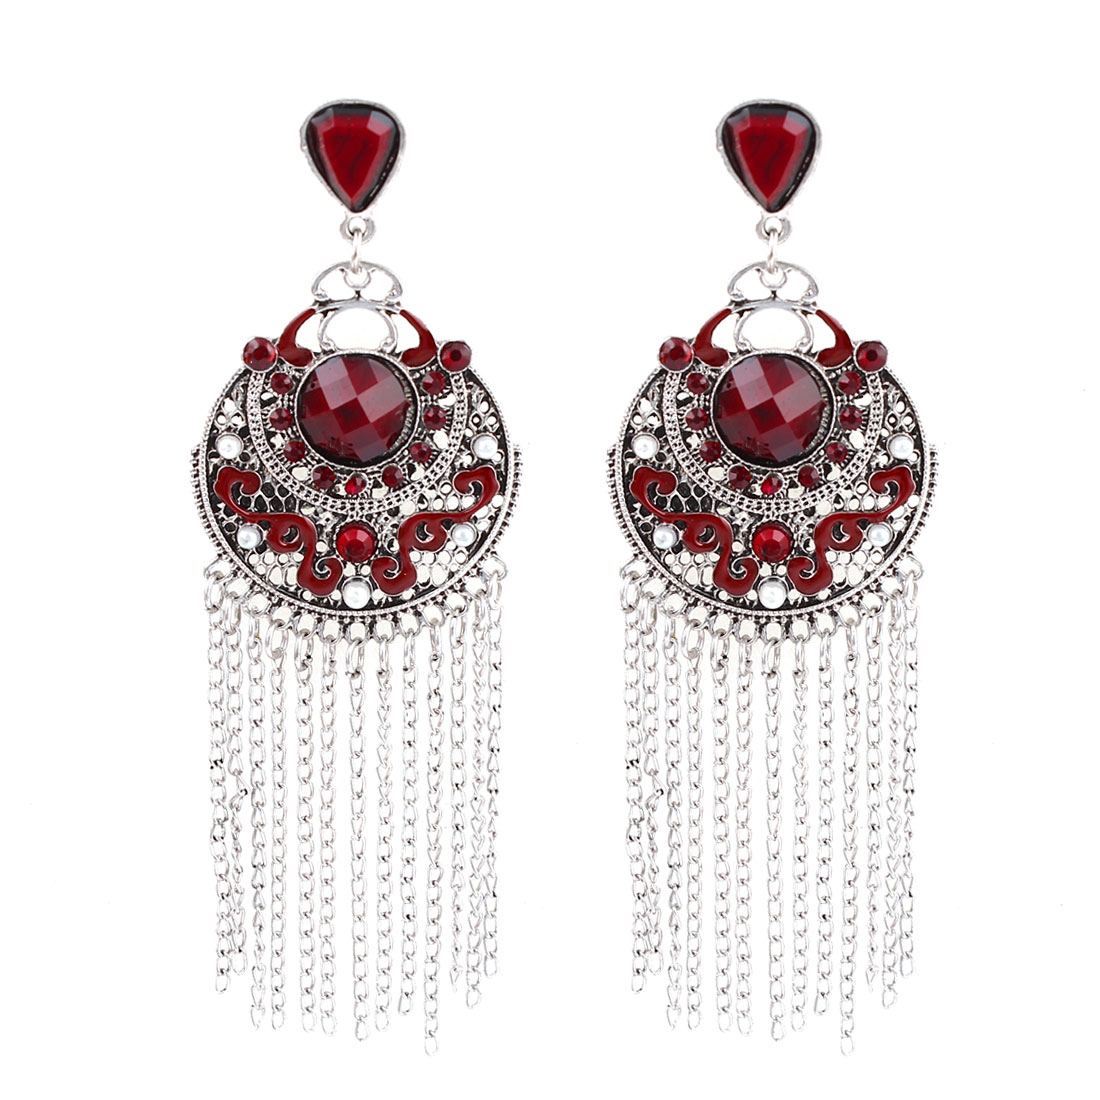 Lady Red Rhinestone Gray Metal Round Hollow Pendant Dangling Earrings Pair